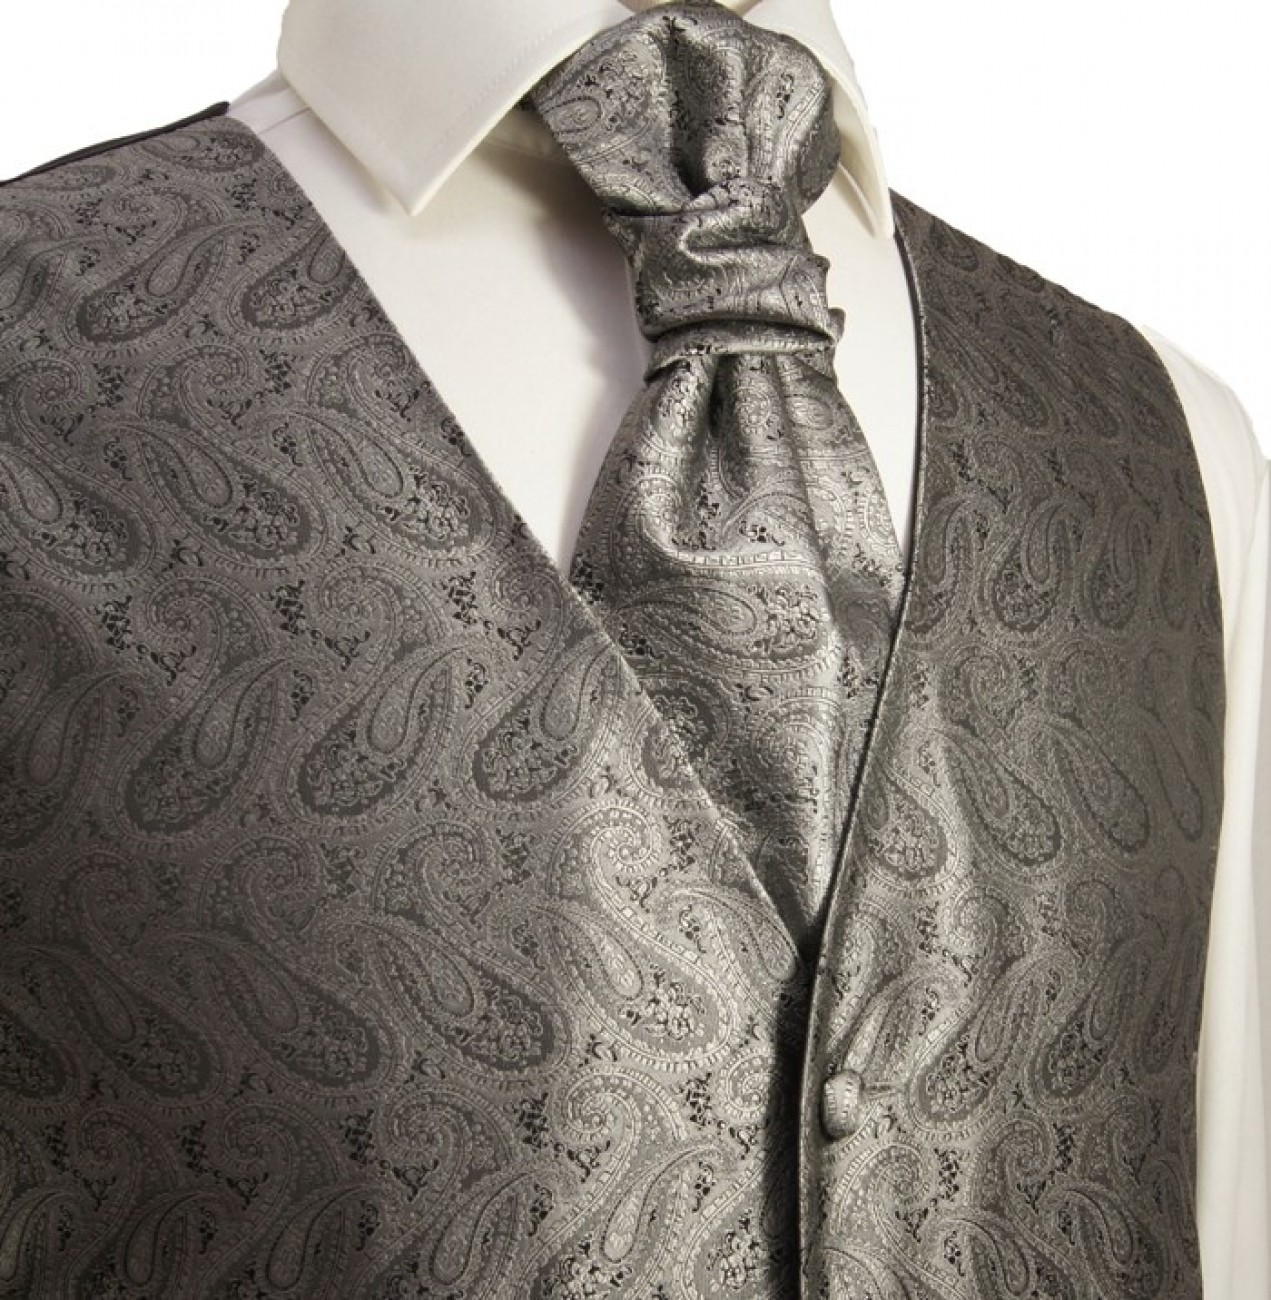 Silver gray waistcoat paisley for wedding with necktie ascot tie pocket square and cufflinks v30